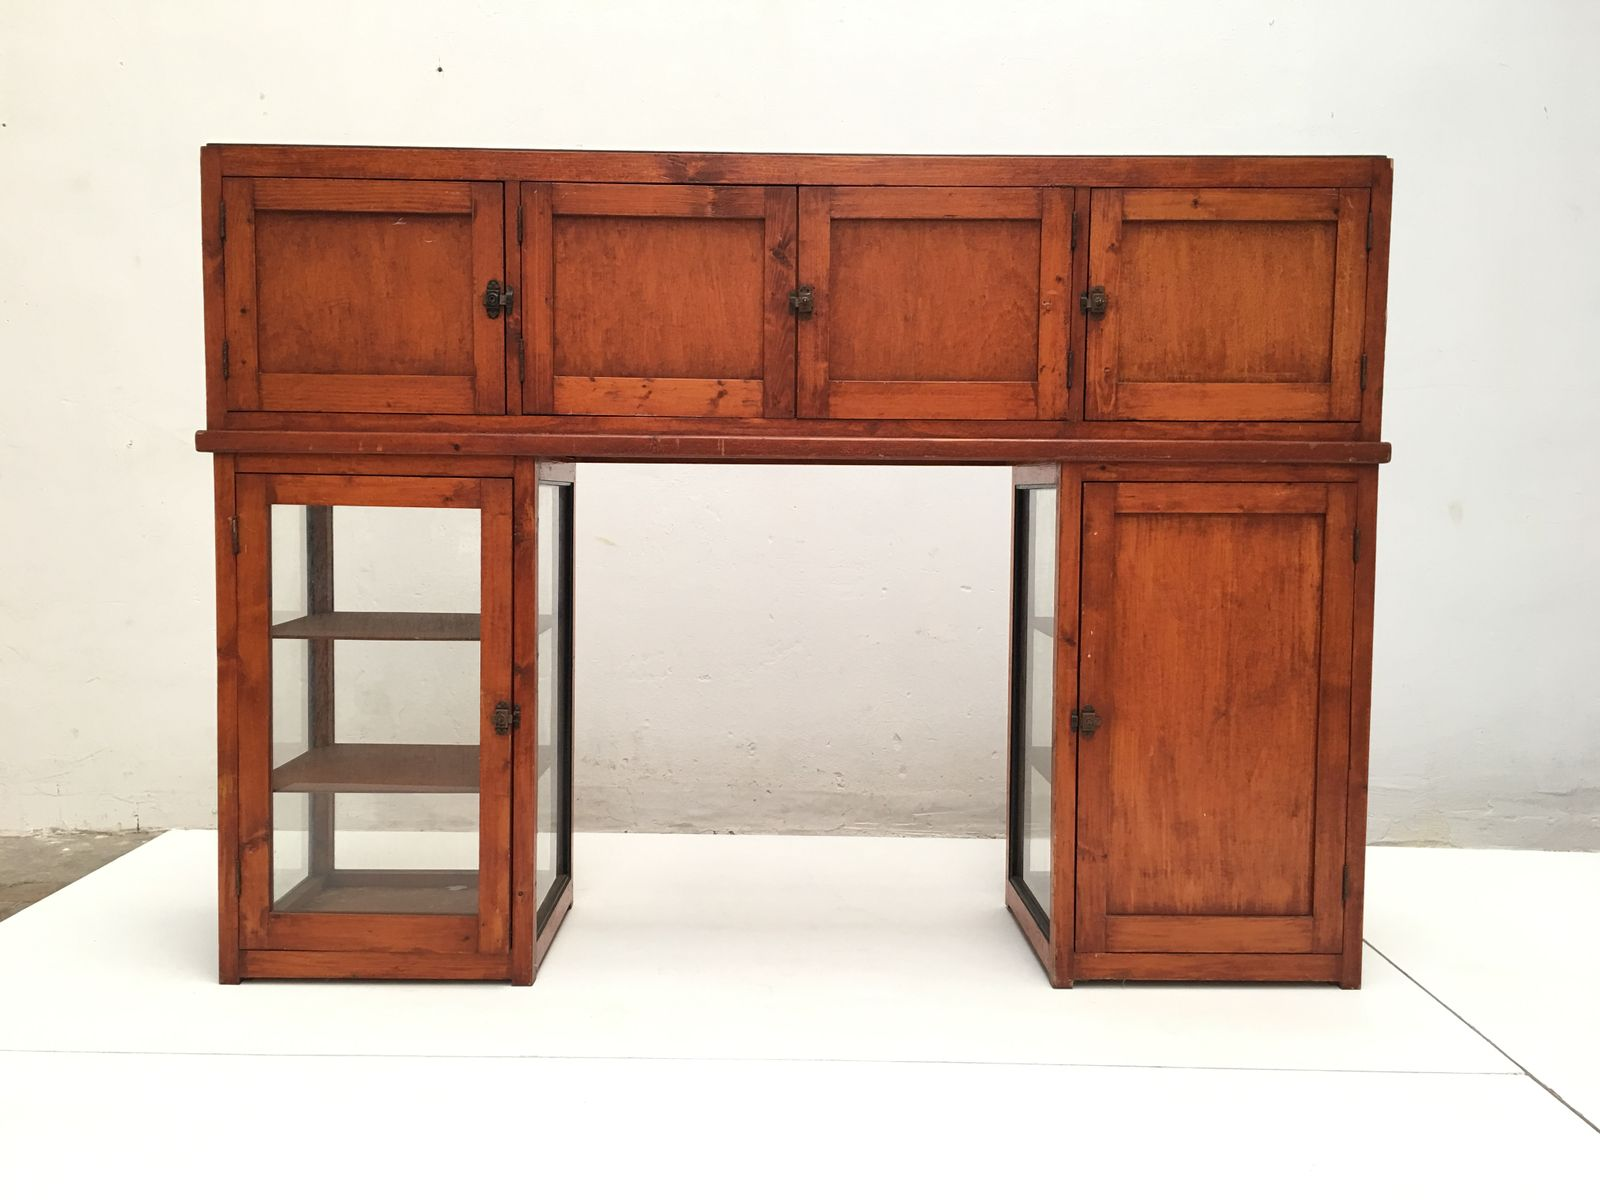 Modular Shop Display Cabinet, 1920s for sale at Pamono